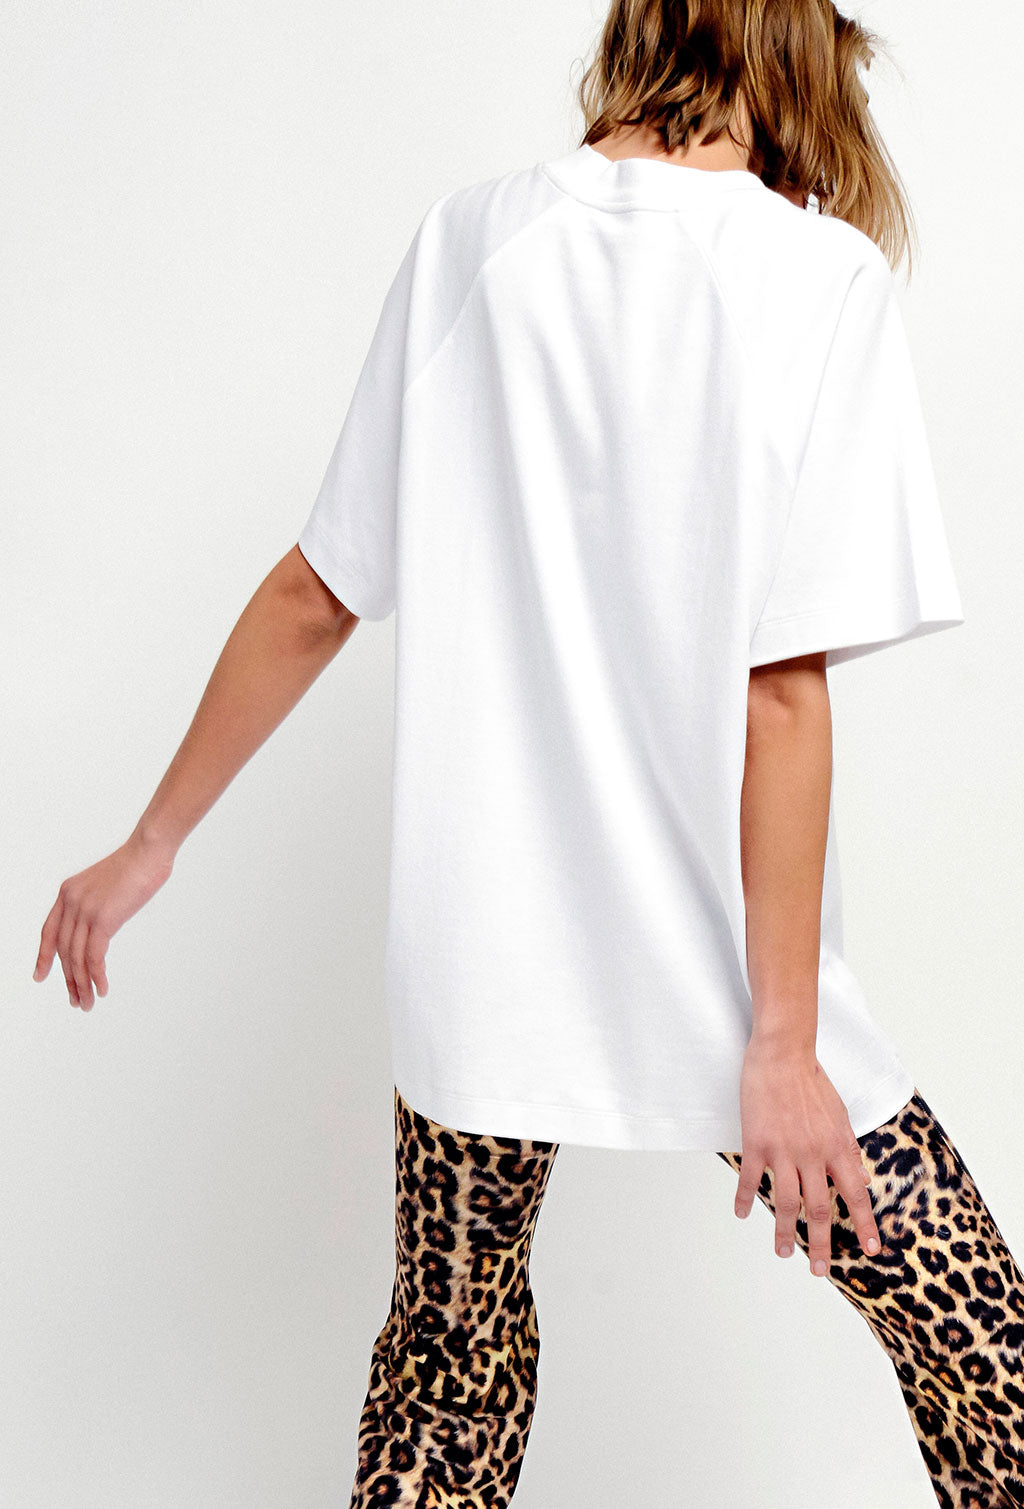 ART DECO LONGLINE T-SHIRT WHITE